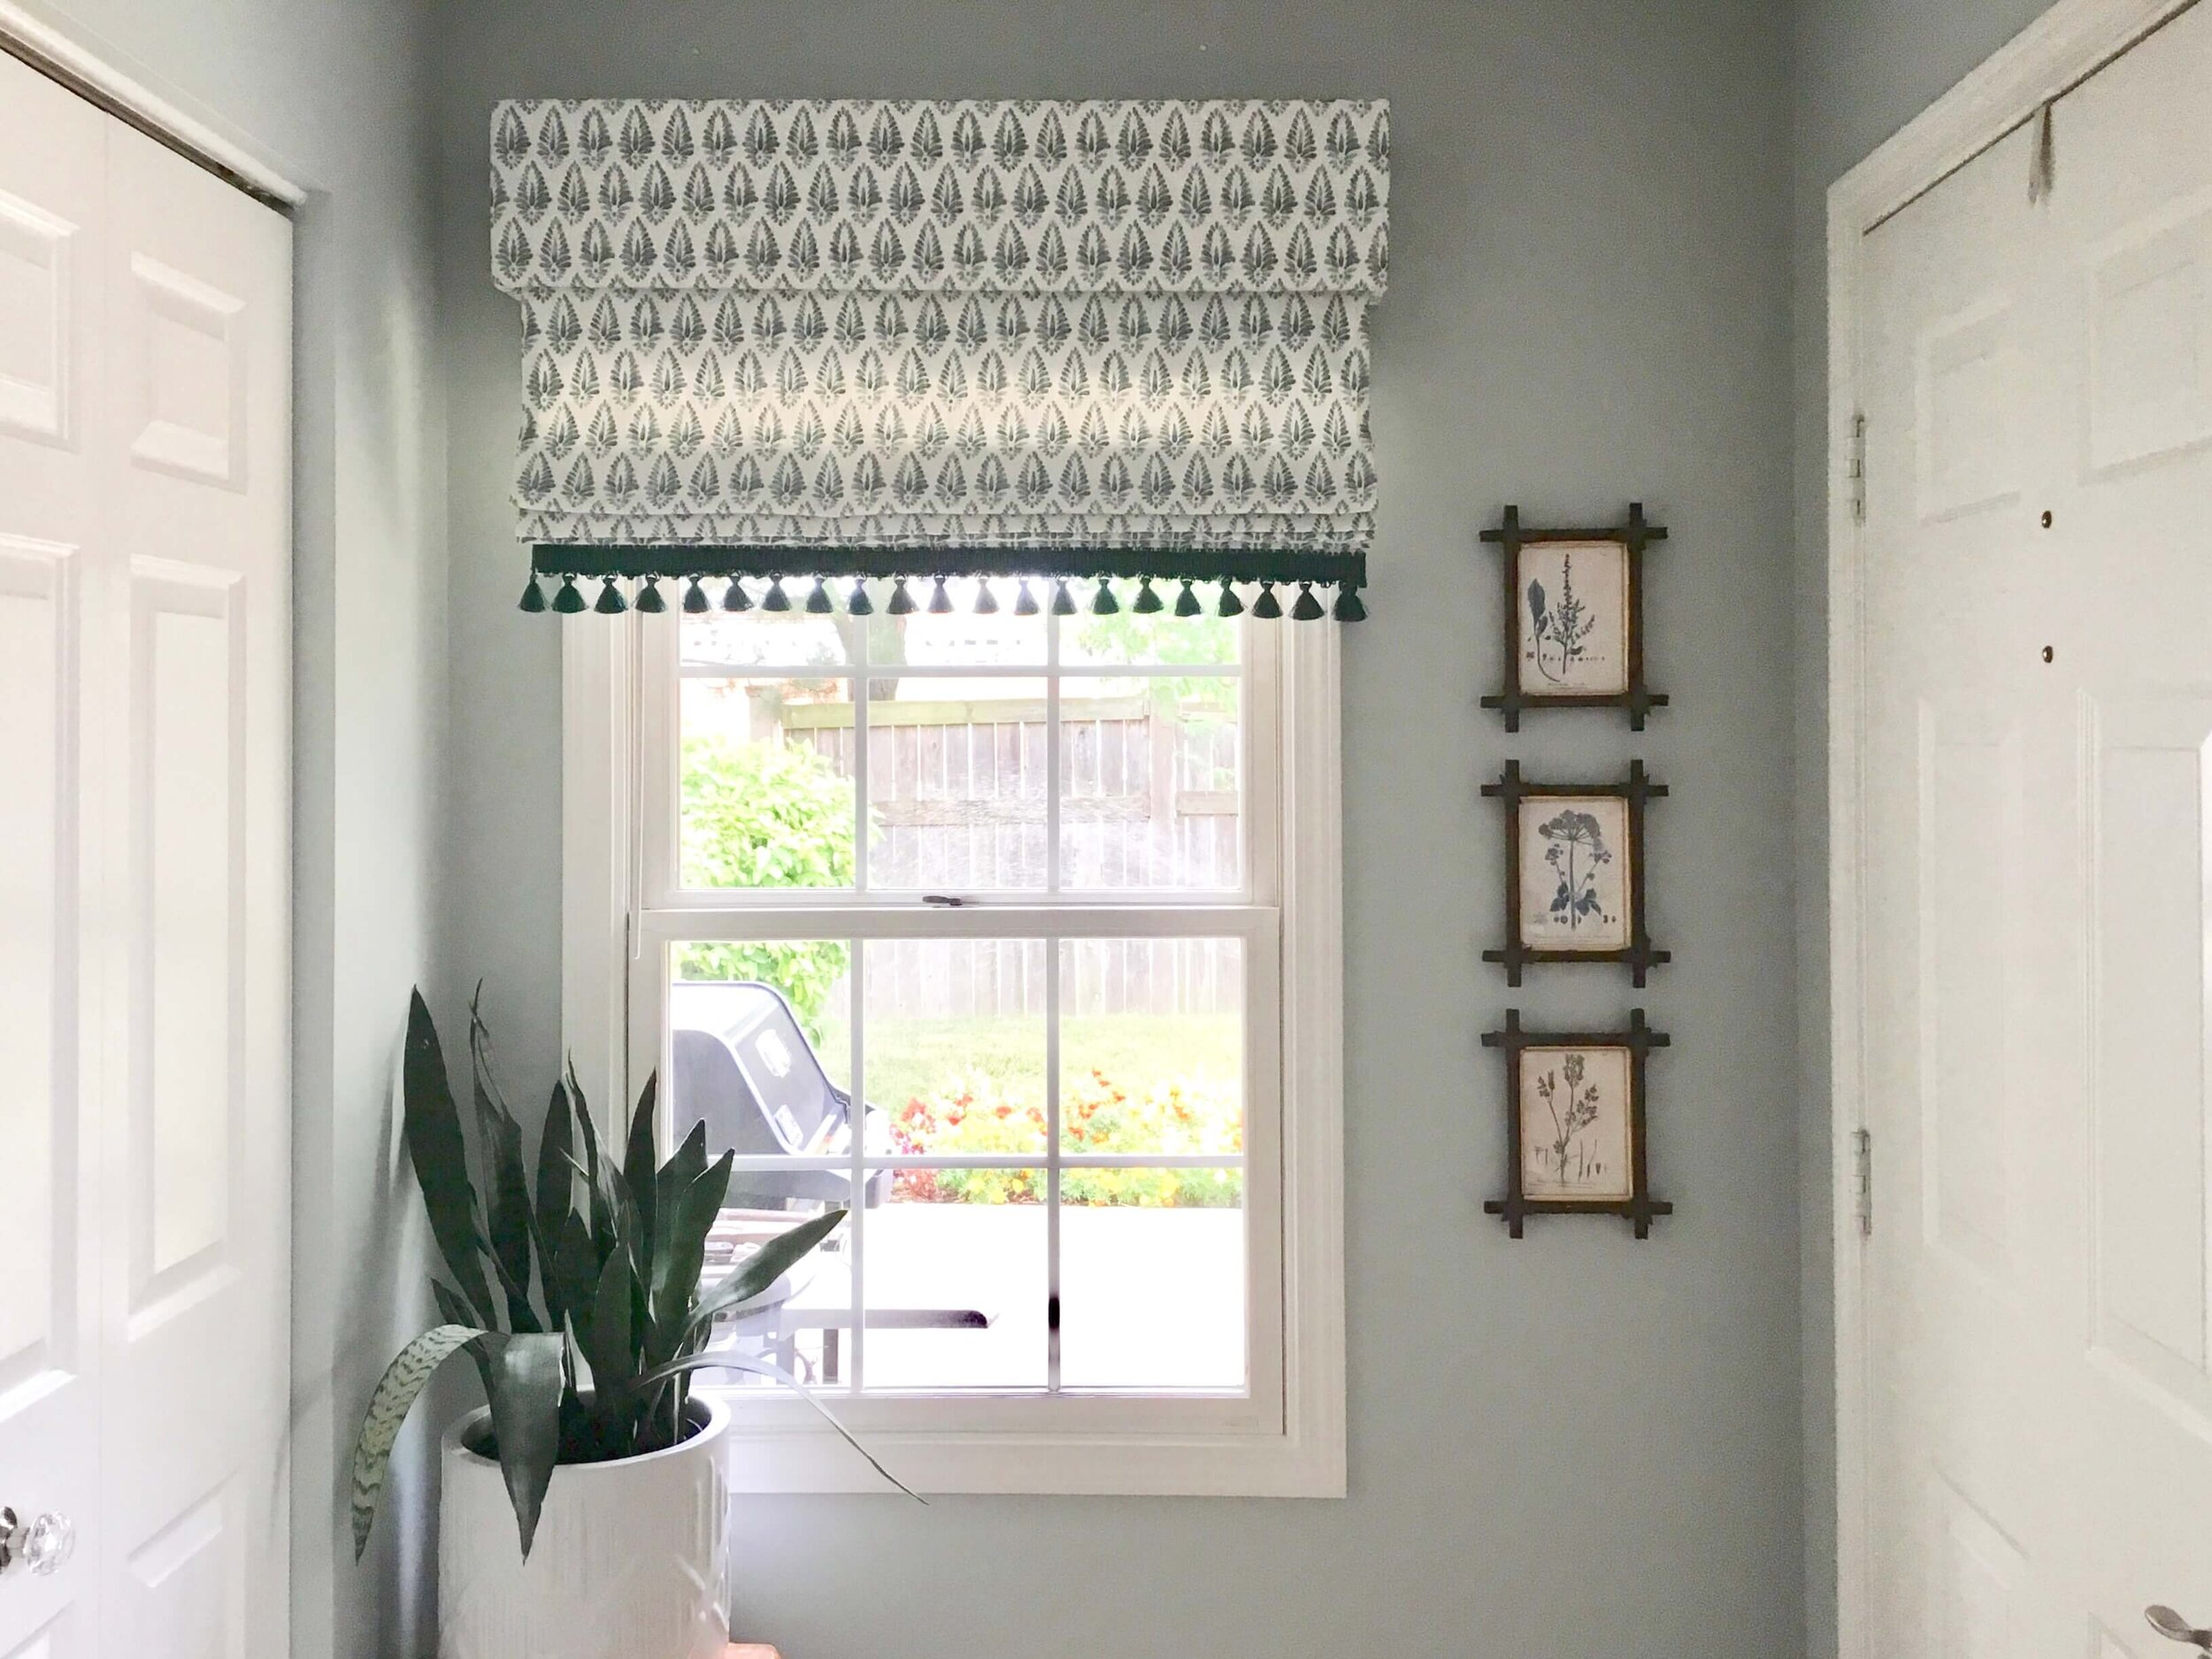 The homeowner did a great job on the Roman shade with the new patterned fabric and trim. It is scaled better for this smaller space and covers the window appropriately. #romanshade #windowtreatment #coastaldecor